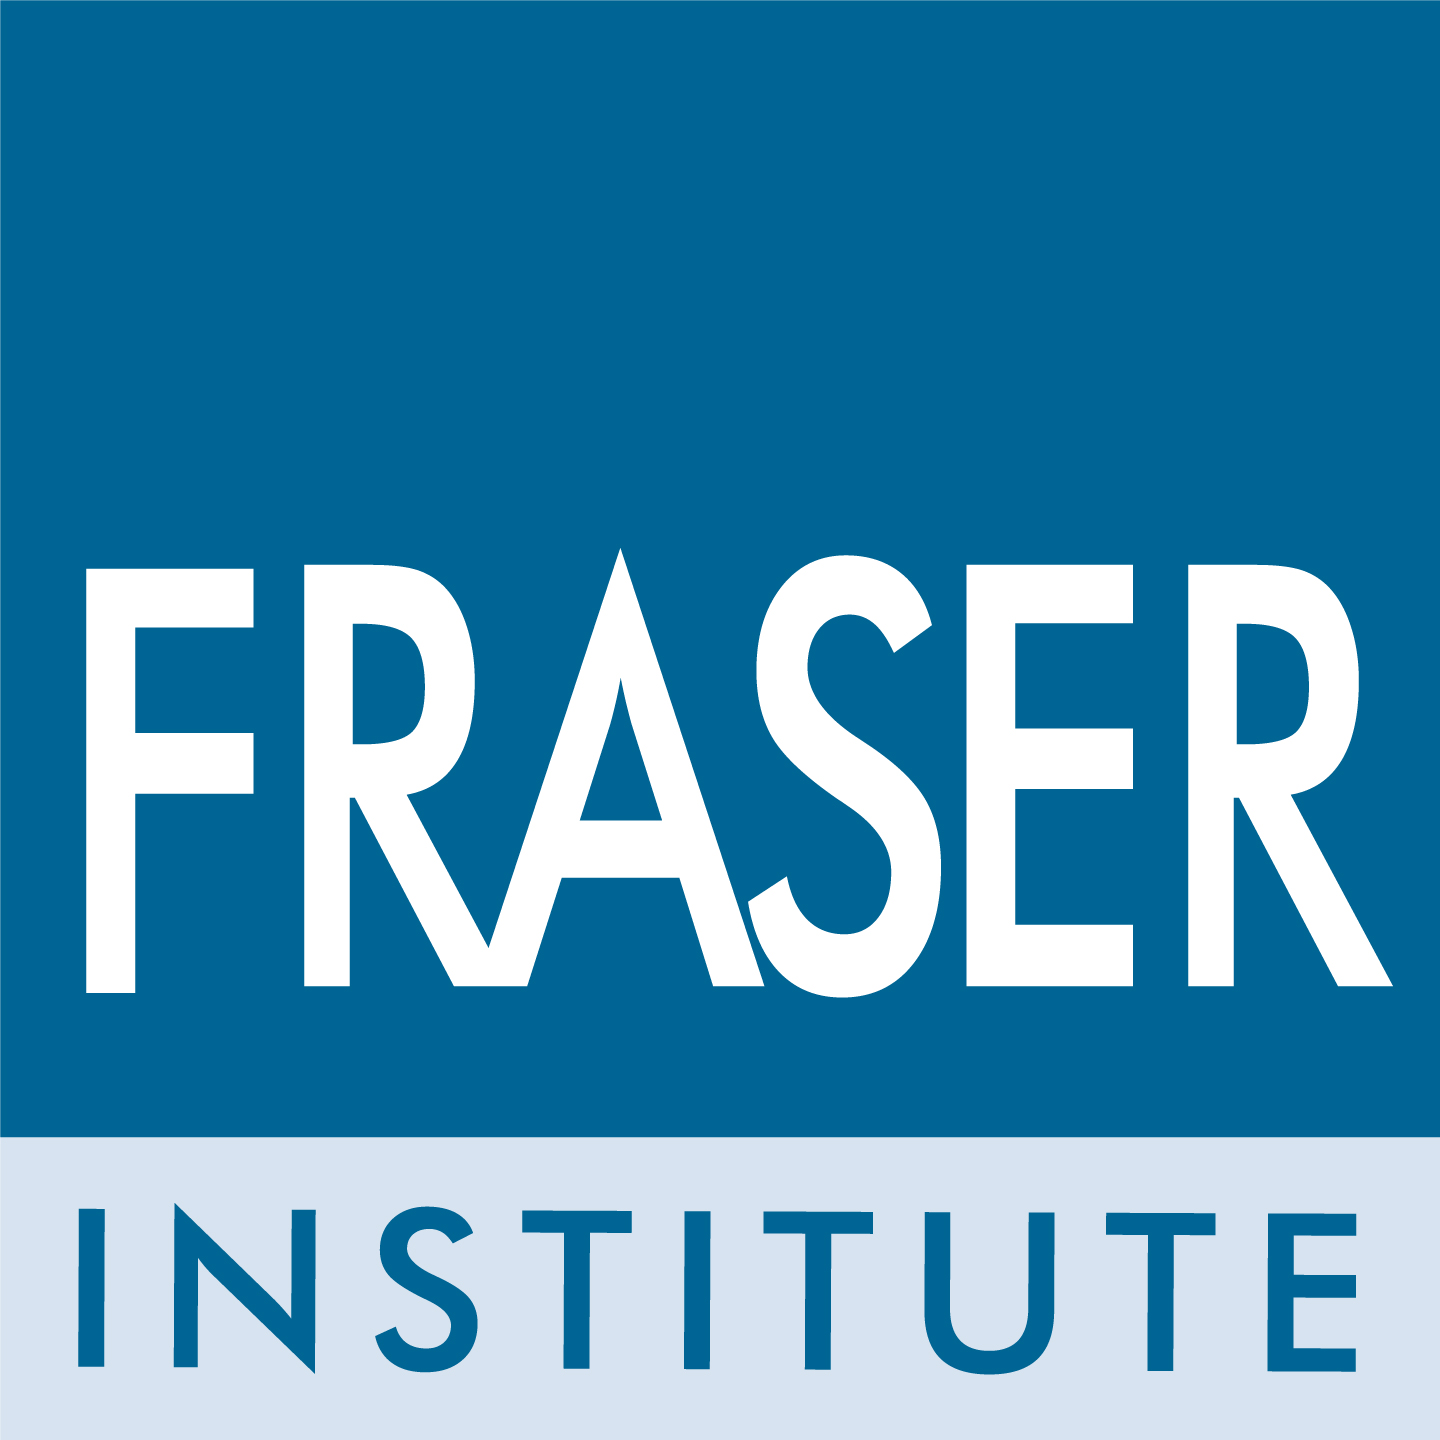 Fraser Institute News Release: Alberta's net contribution to Ottawa—more than $94 billion—dwarfed contributions from other provinces in recent years